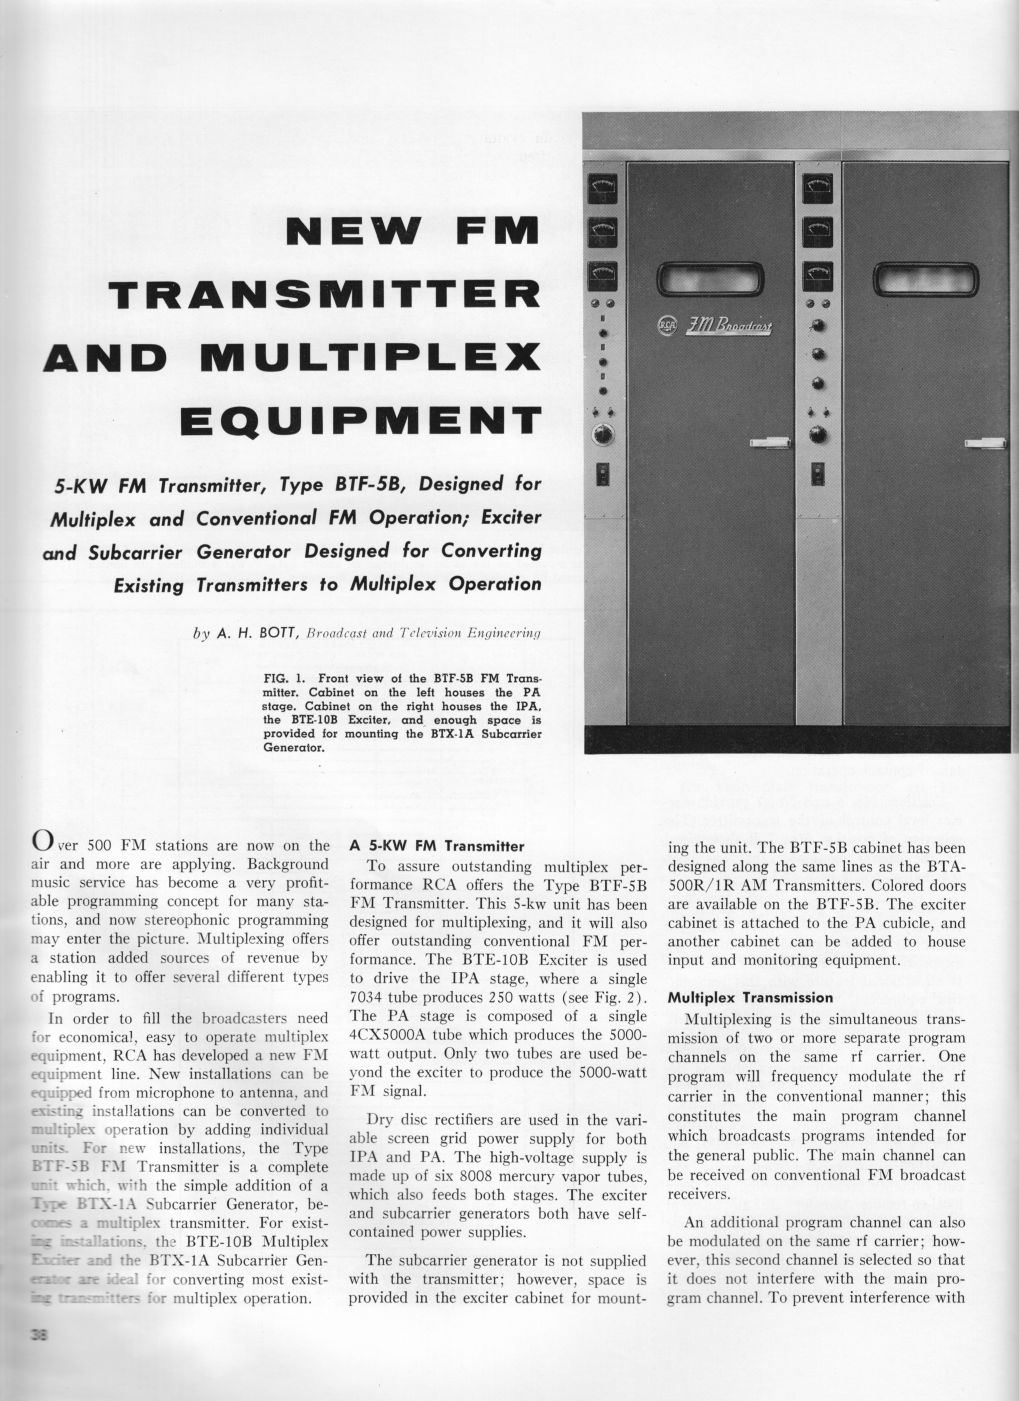 RCA BTE-10B Direct FM Exciter, page 1